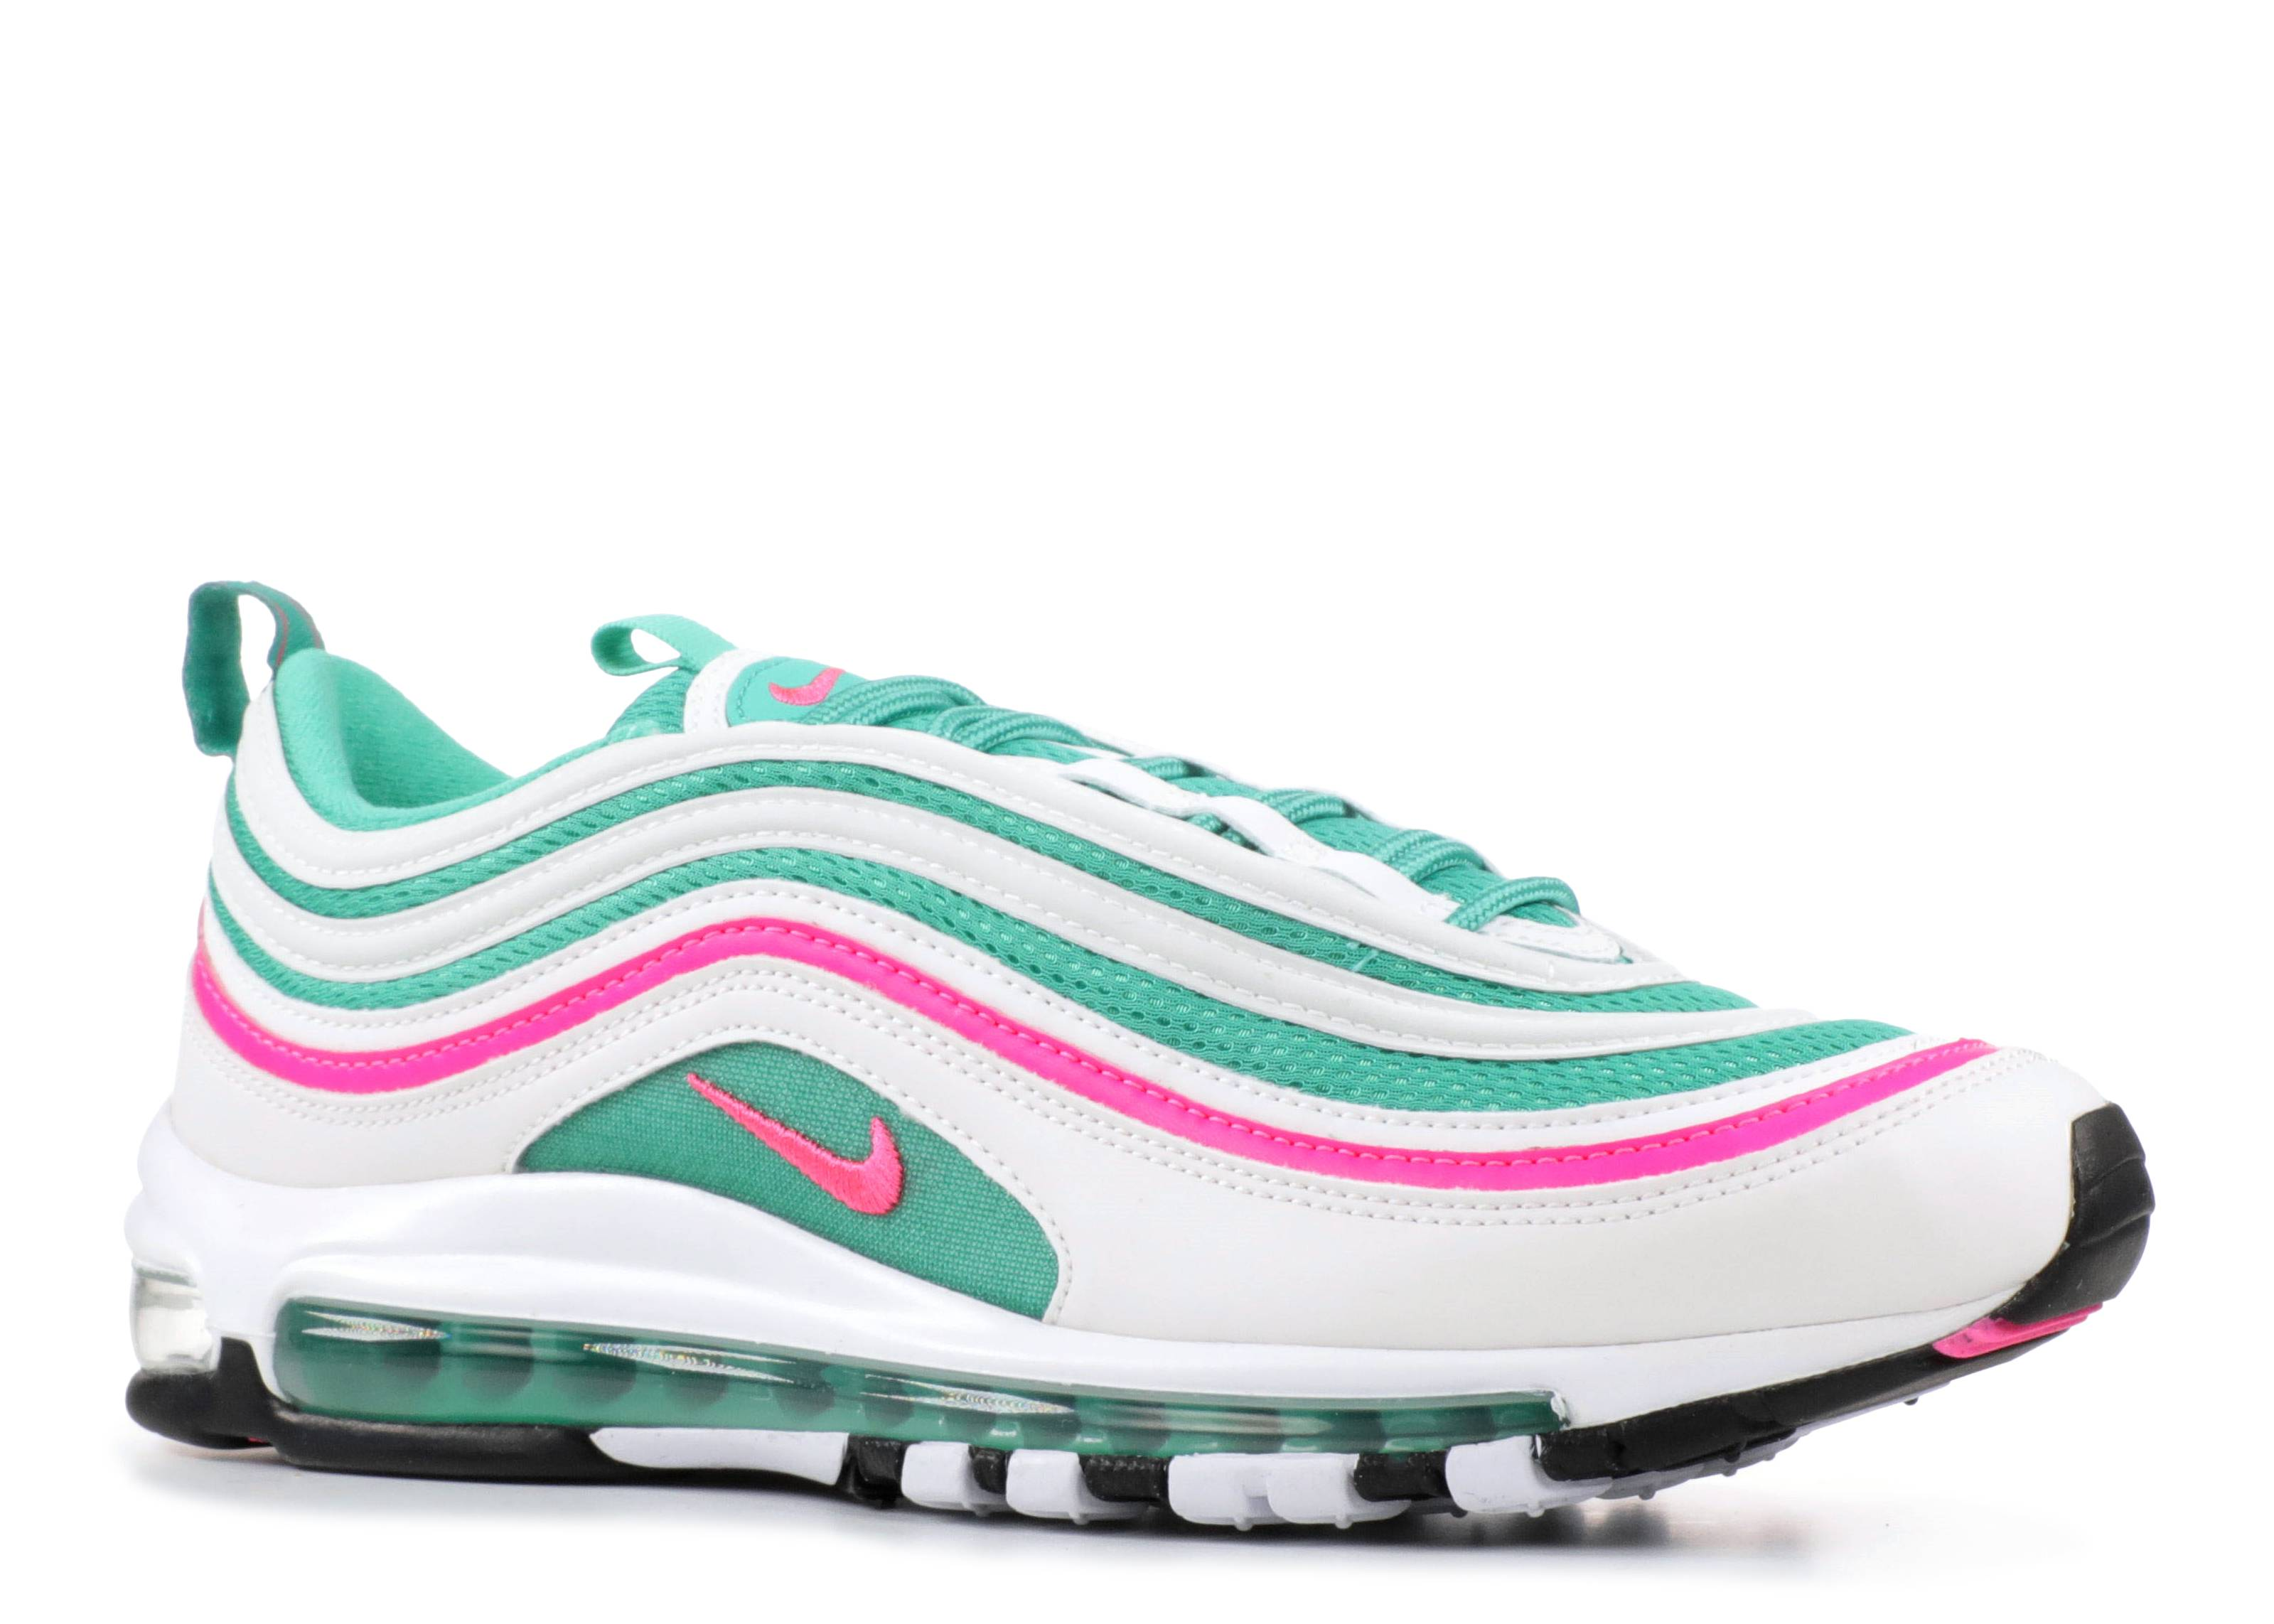 size 40 fd336 7ebbd ... switzerland nike air max 97 south beach nike 921826 102 white pink  blast kinetic green flight